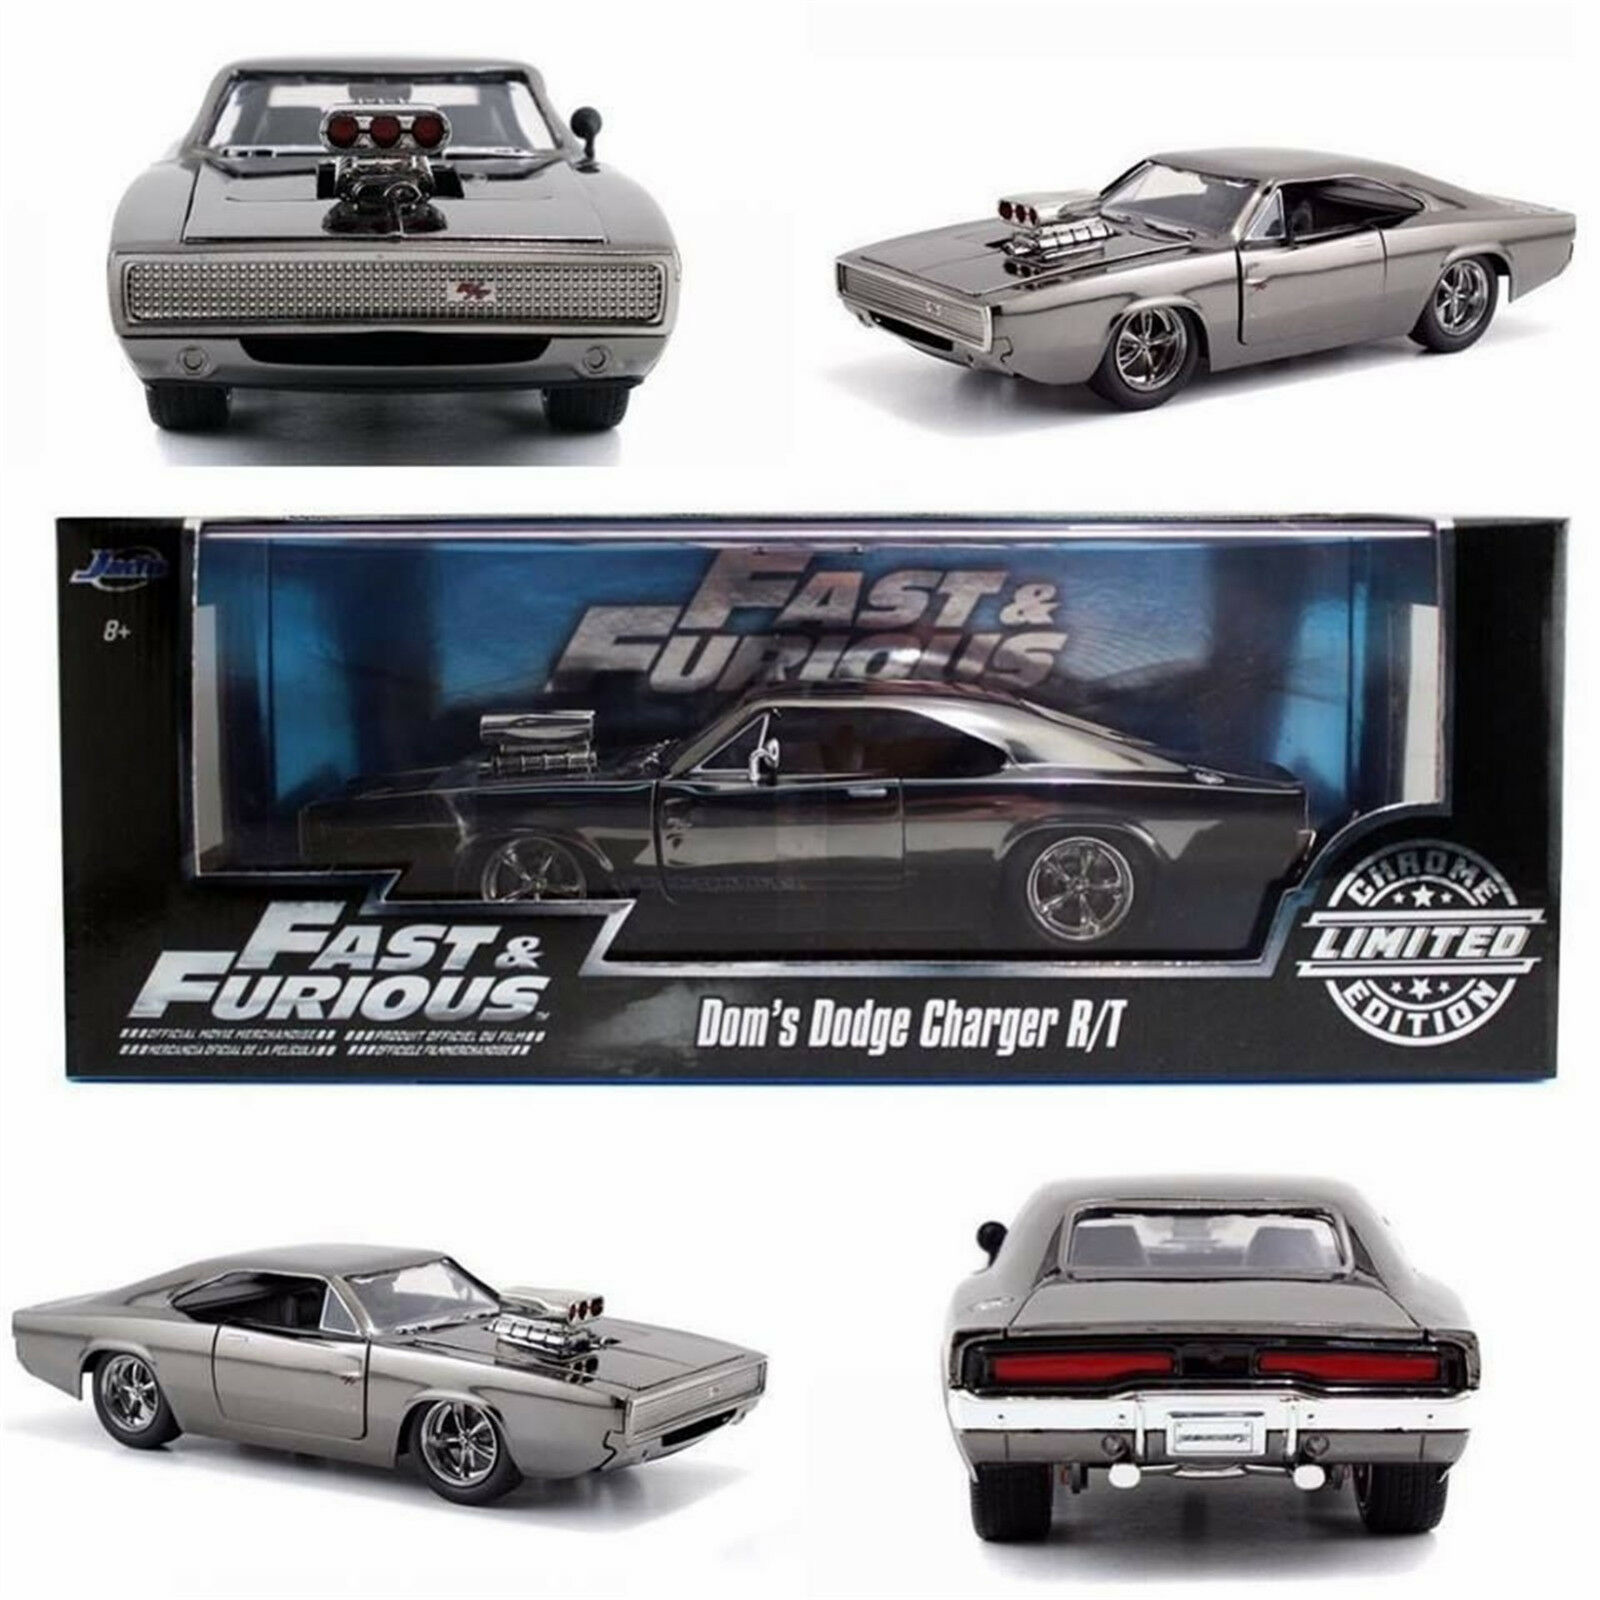 Fast & FURIOUS DOM'S Dodge Charger R T CHROME Limited 1 24 Diecast JADA 97443